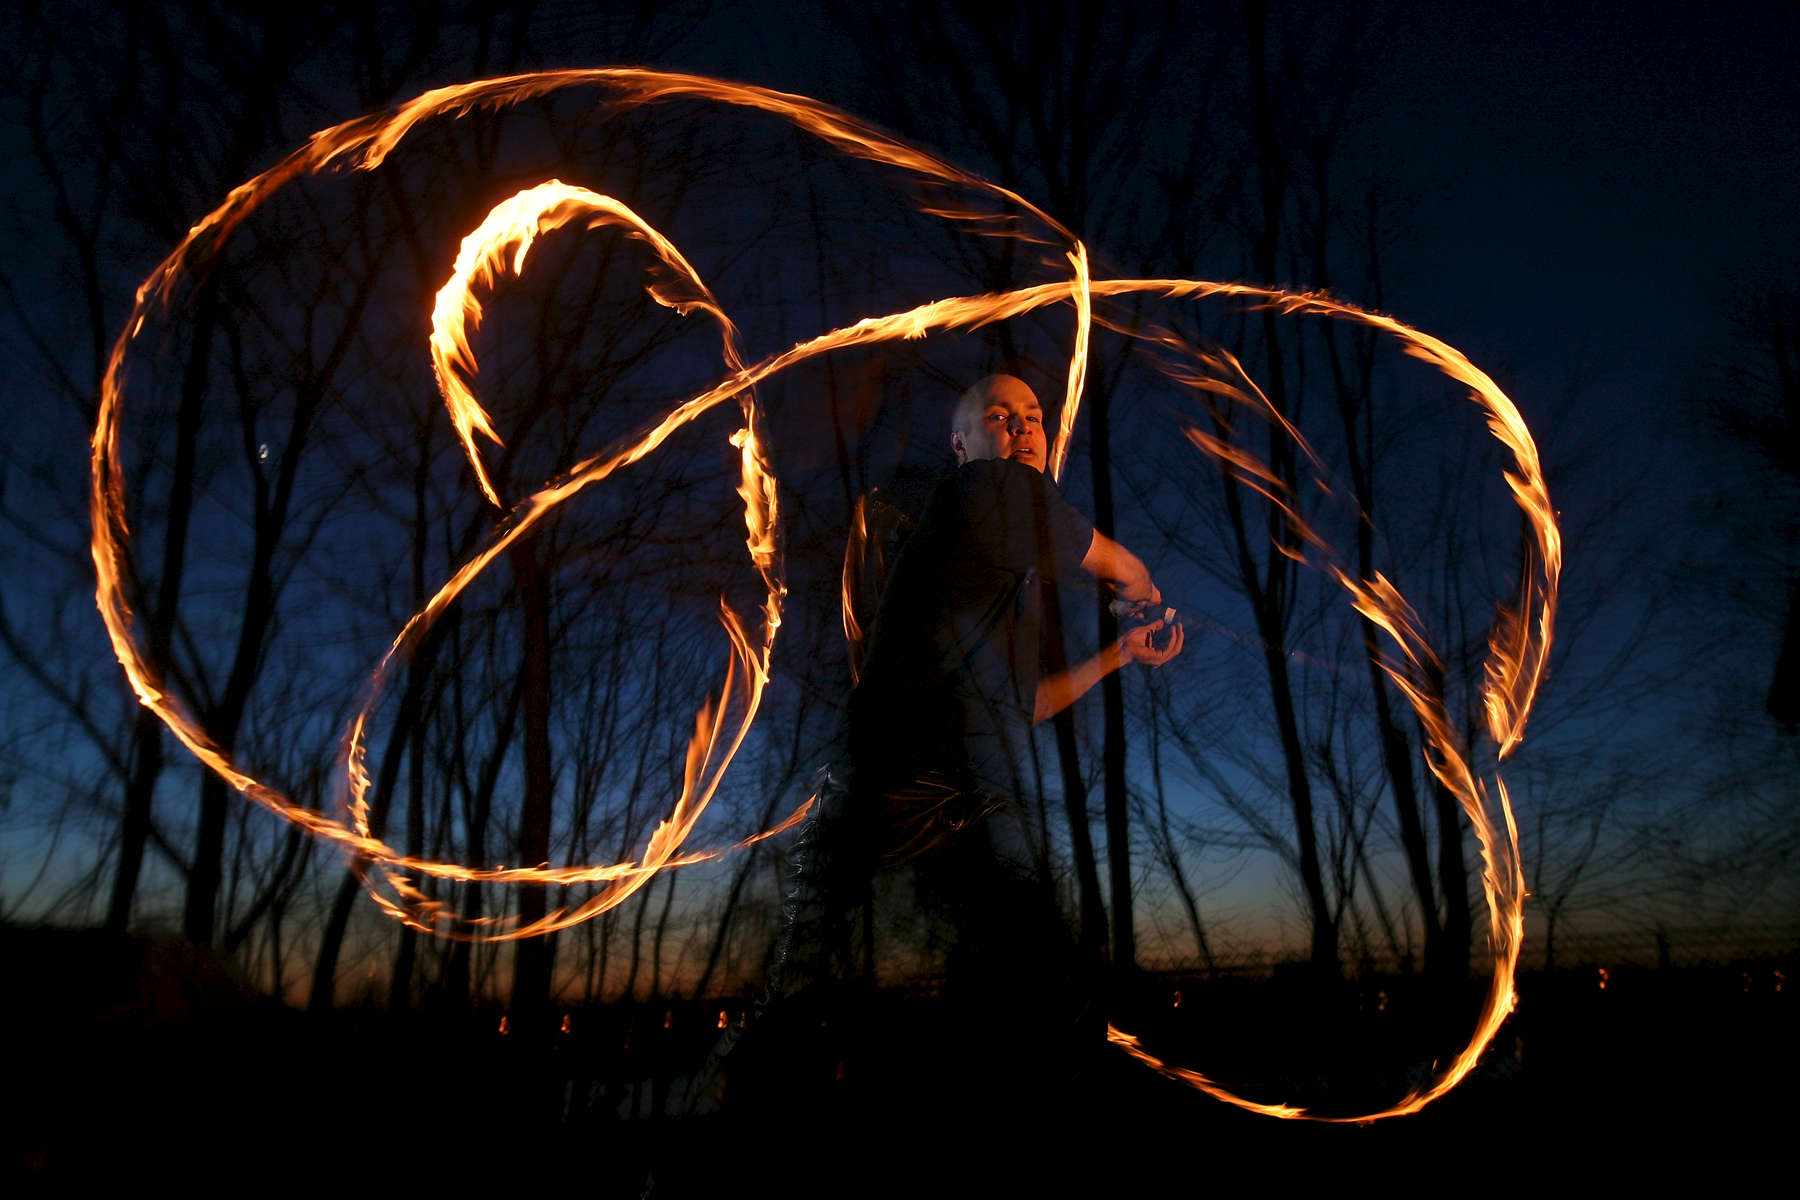 Salem, MA  03/11/2007 Chad Bennett, cq, is a poi (fire spinner) in Salem, MA. He is demonstrating various fire spinning techniques. Every summer for the past two years, Chad has been hosting the Wildfire Festival, a bi-annual. 3-day intensive training camp for New England fire performers, belly dancers and drum makers. Story by Amy Farnsworth.  Dina Rudick/Globe Staff.